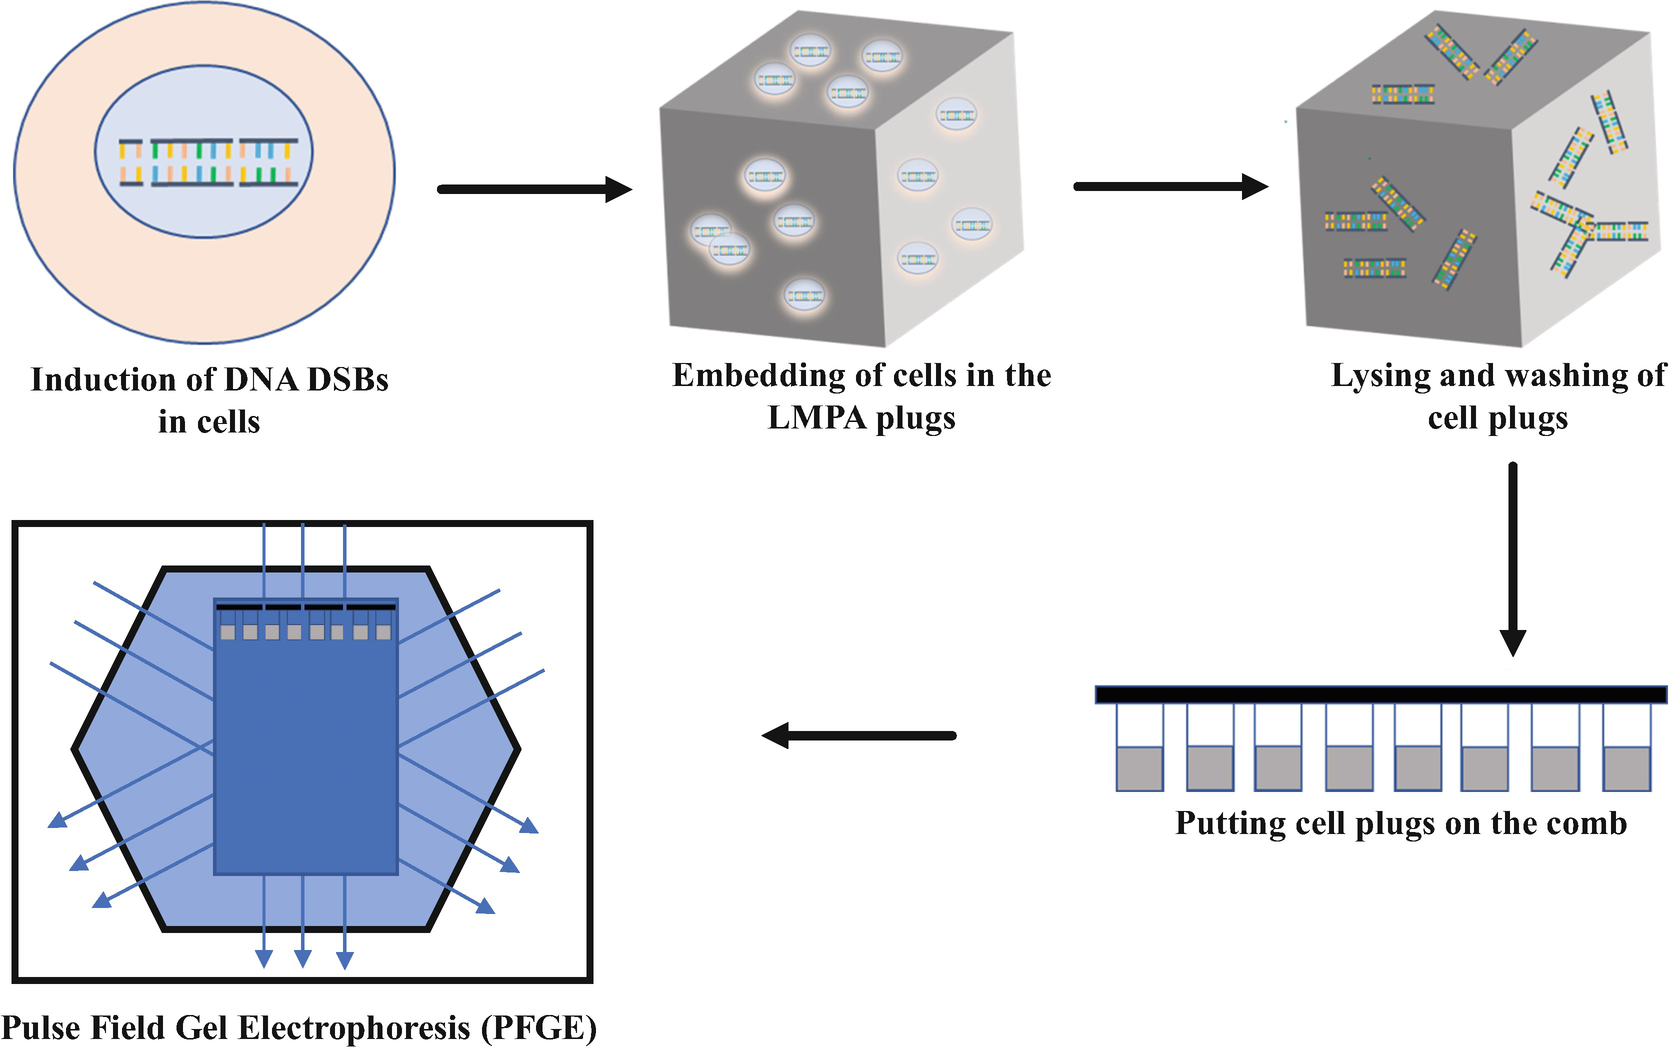 Detection Of Dna Double Strand Breaks Using Pulsed Field Gel